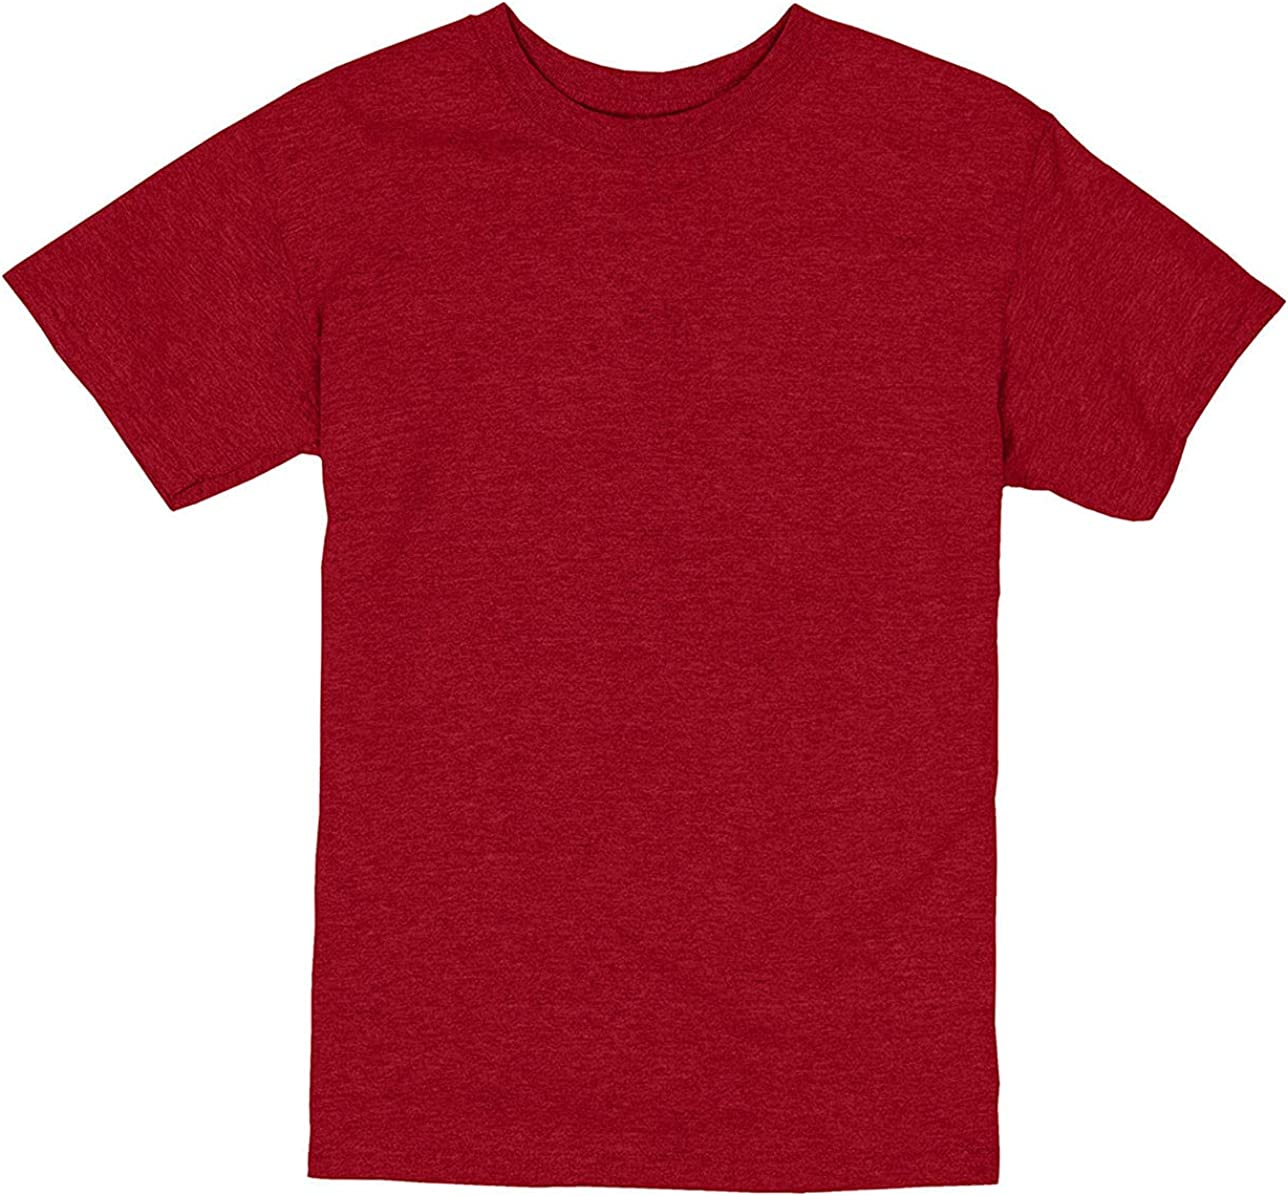 Hanes - ComfortSoft Youth Short Sleeve T-Shirt - 5480 - M - Red Pepper Heather